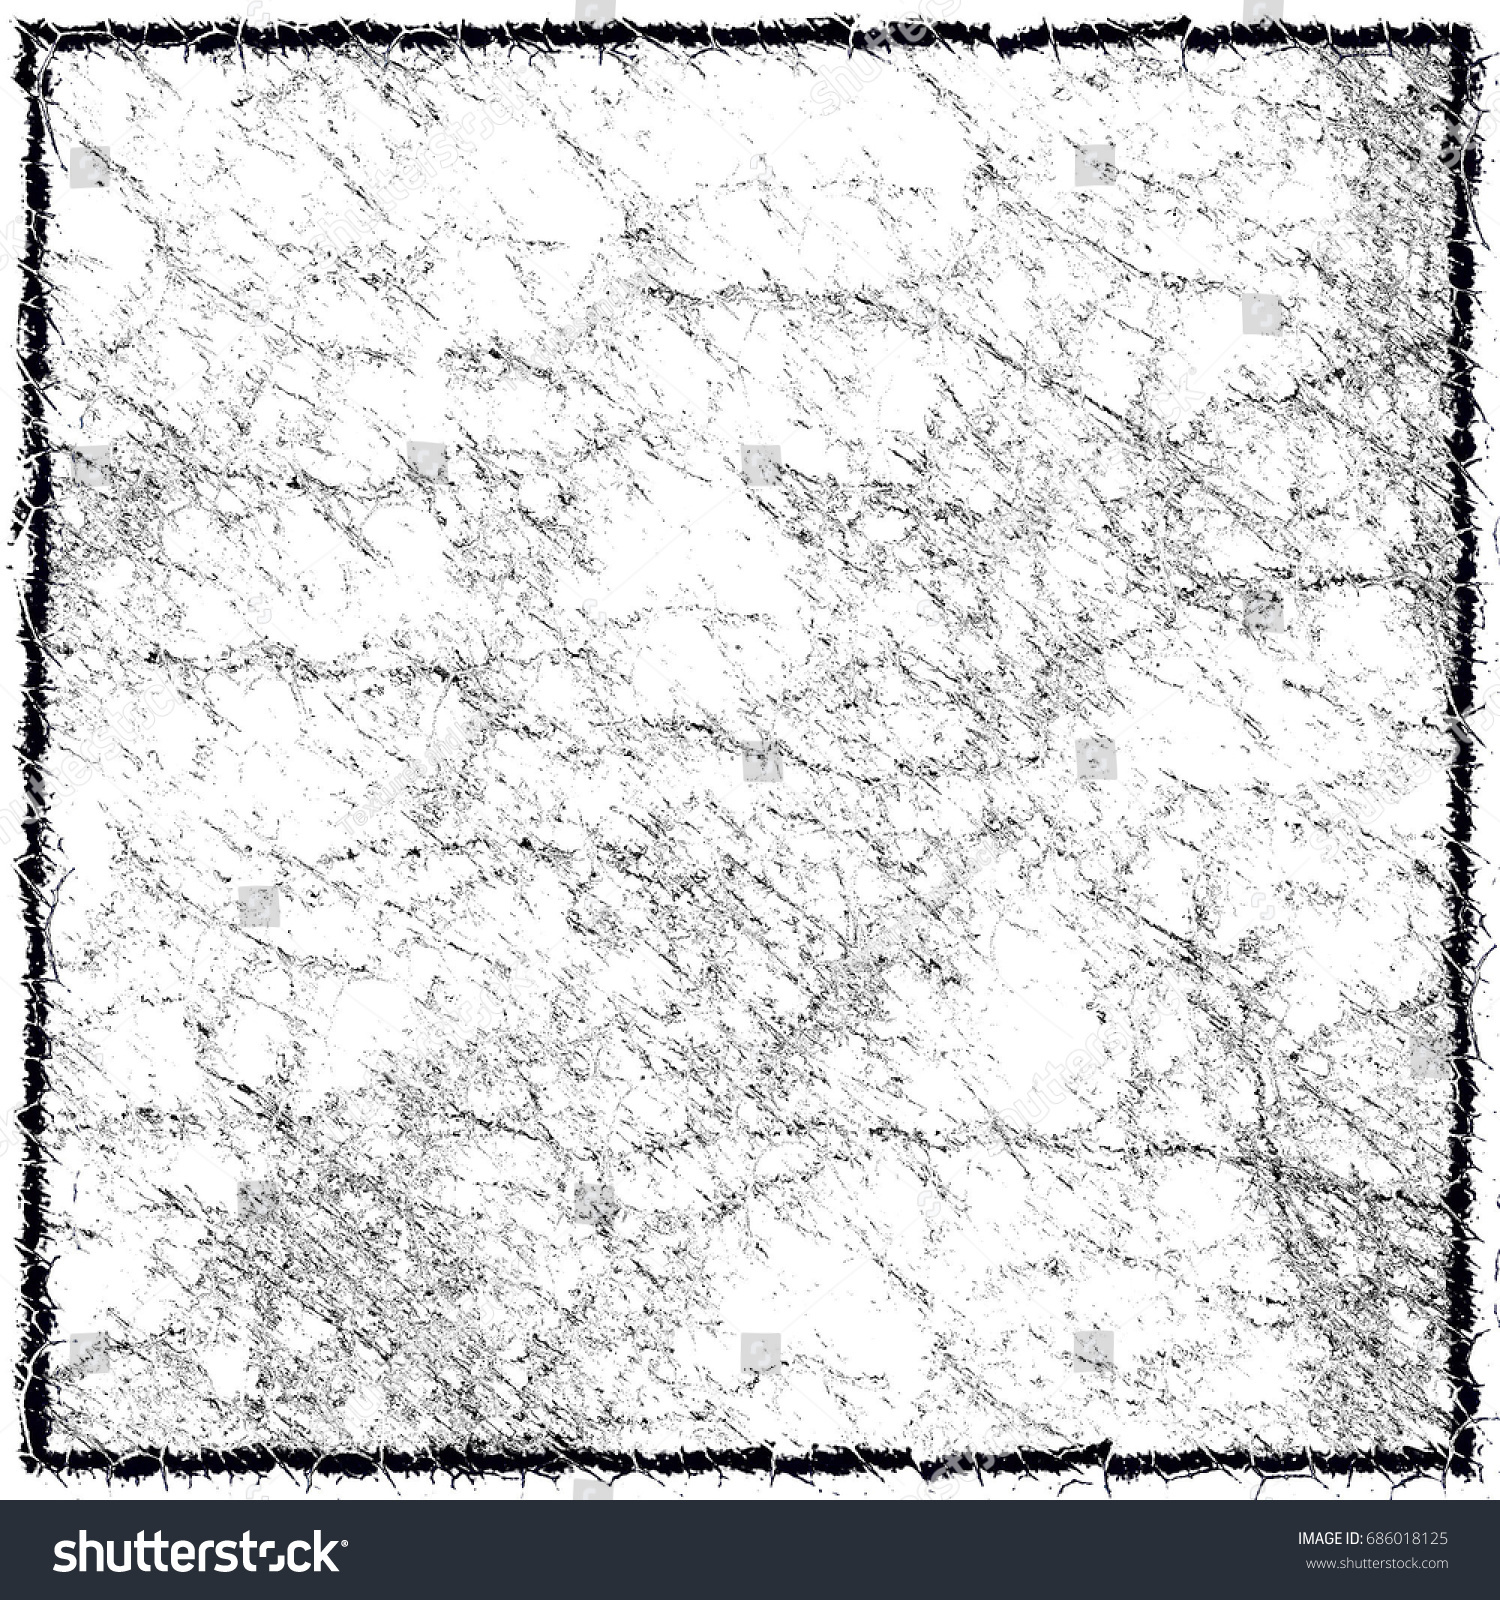 black and white grunge background with a black border